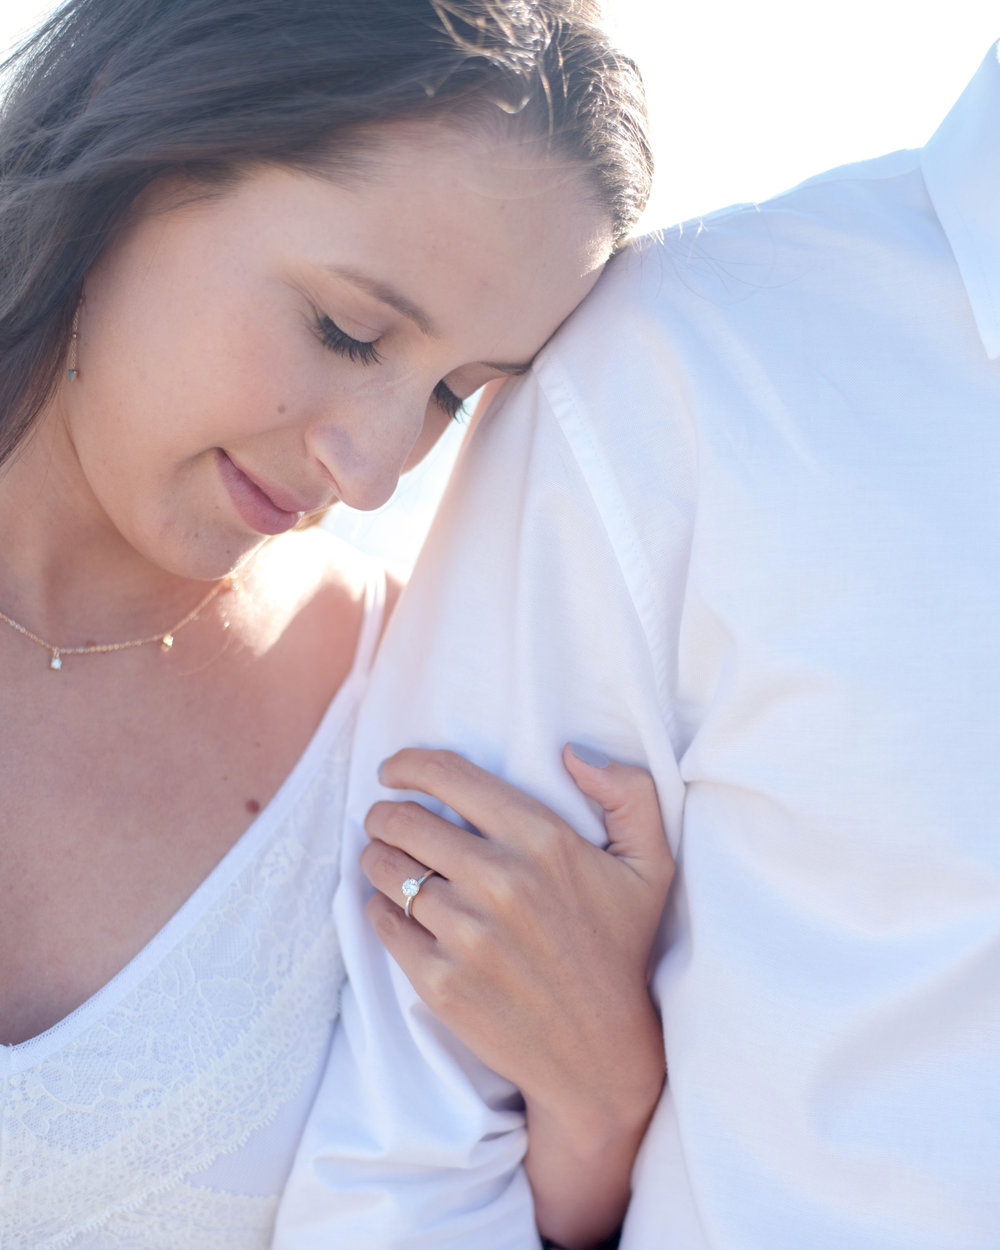 soft natural glowing glam for engagement session by bridal and lifestyle makeup artist kim baker beauty photos by quianna marie photo at davenport beach santa cruz california